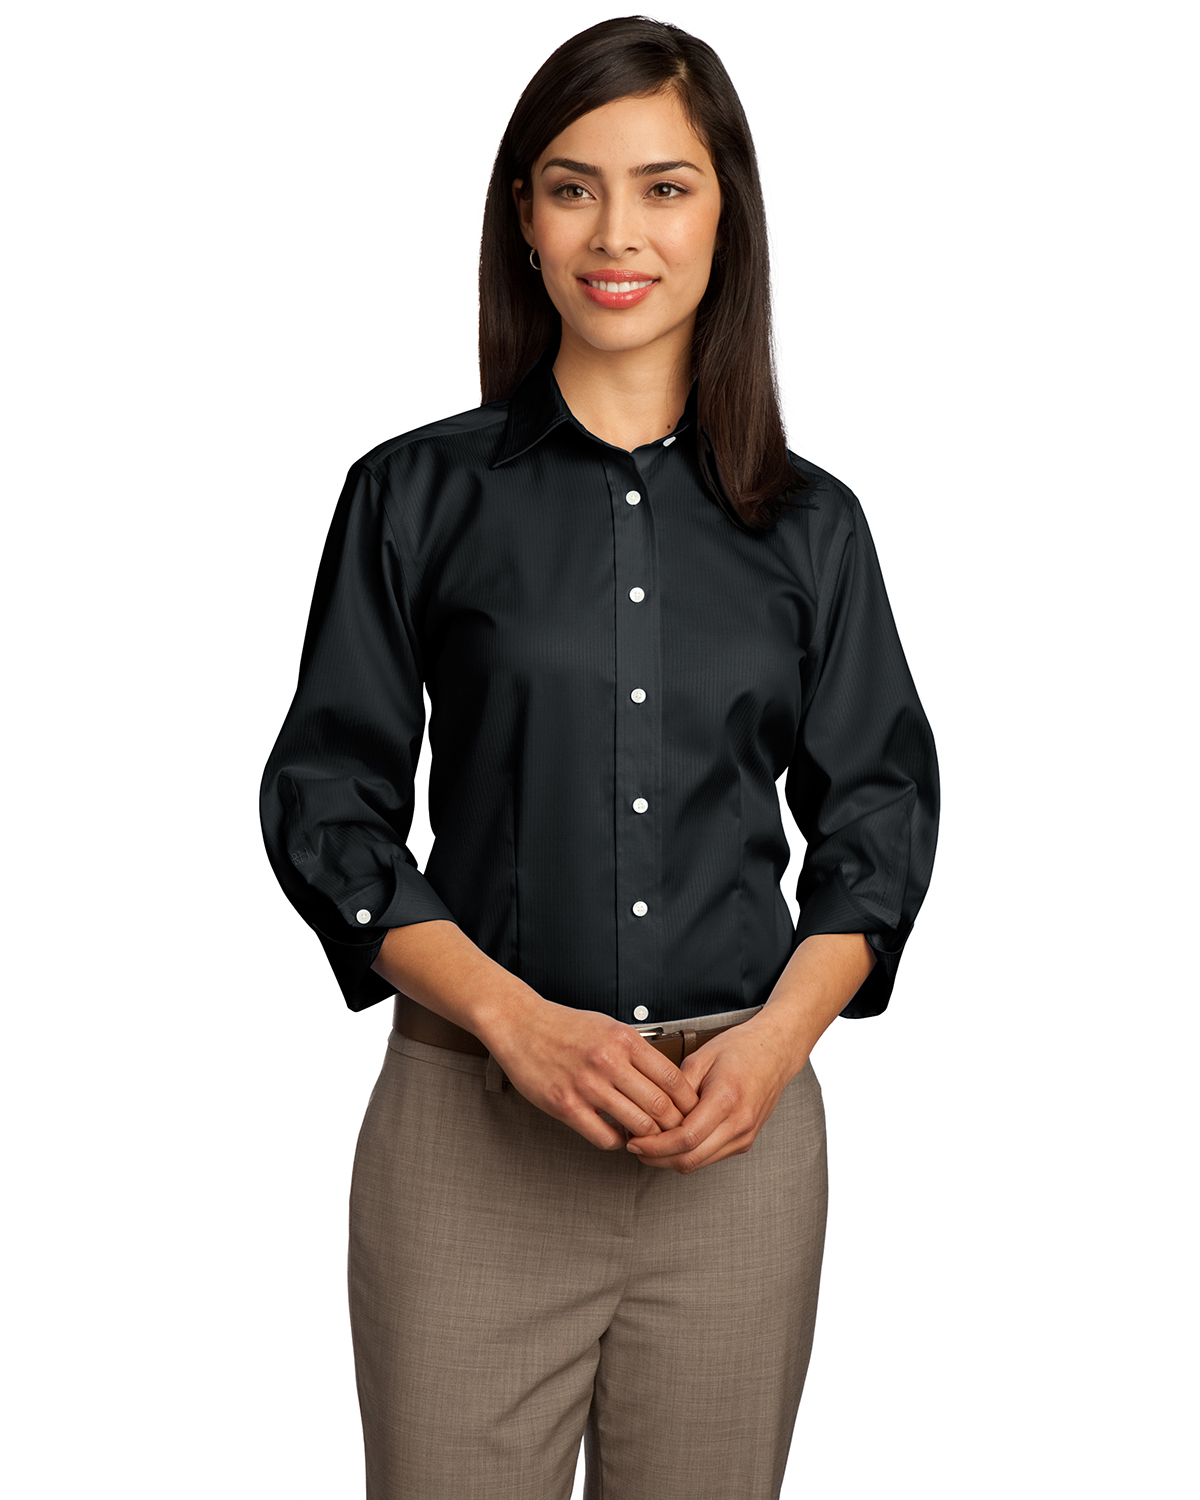 Red House RH61 Women 3/4Sleeve Dobby Non-Iron ButtonDown Shirt Black at GotApparel